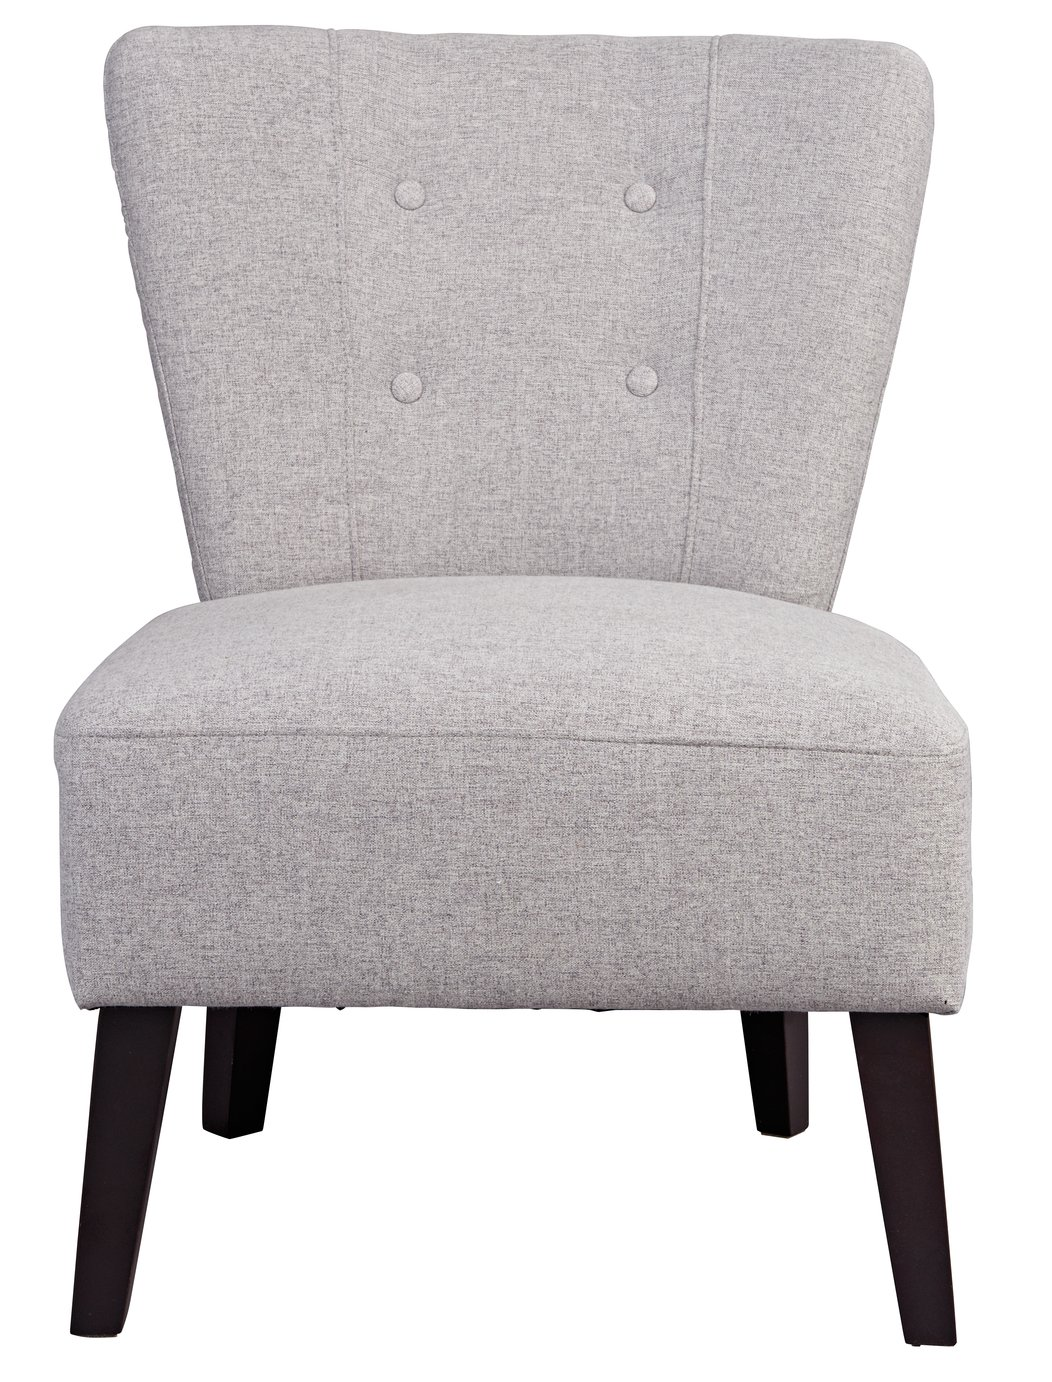 Argos Home Delilah Fabric Cocktail Chair - Light Grey